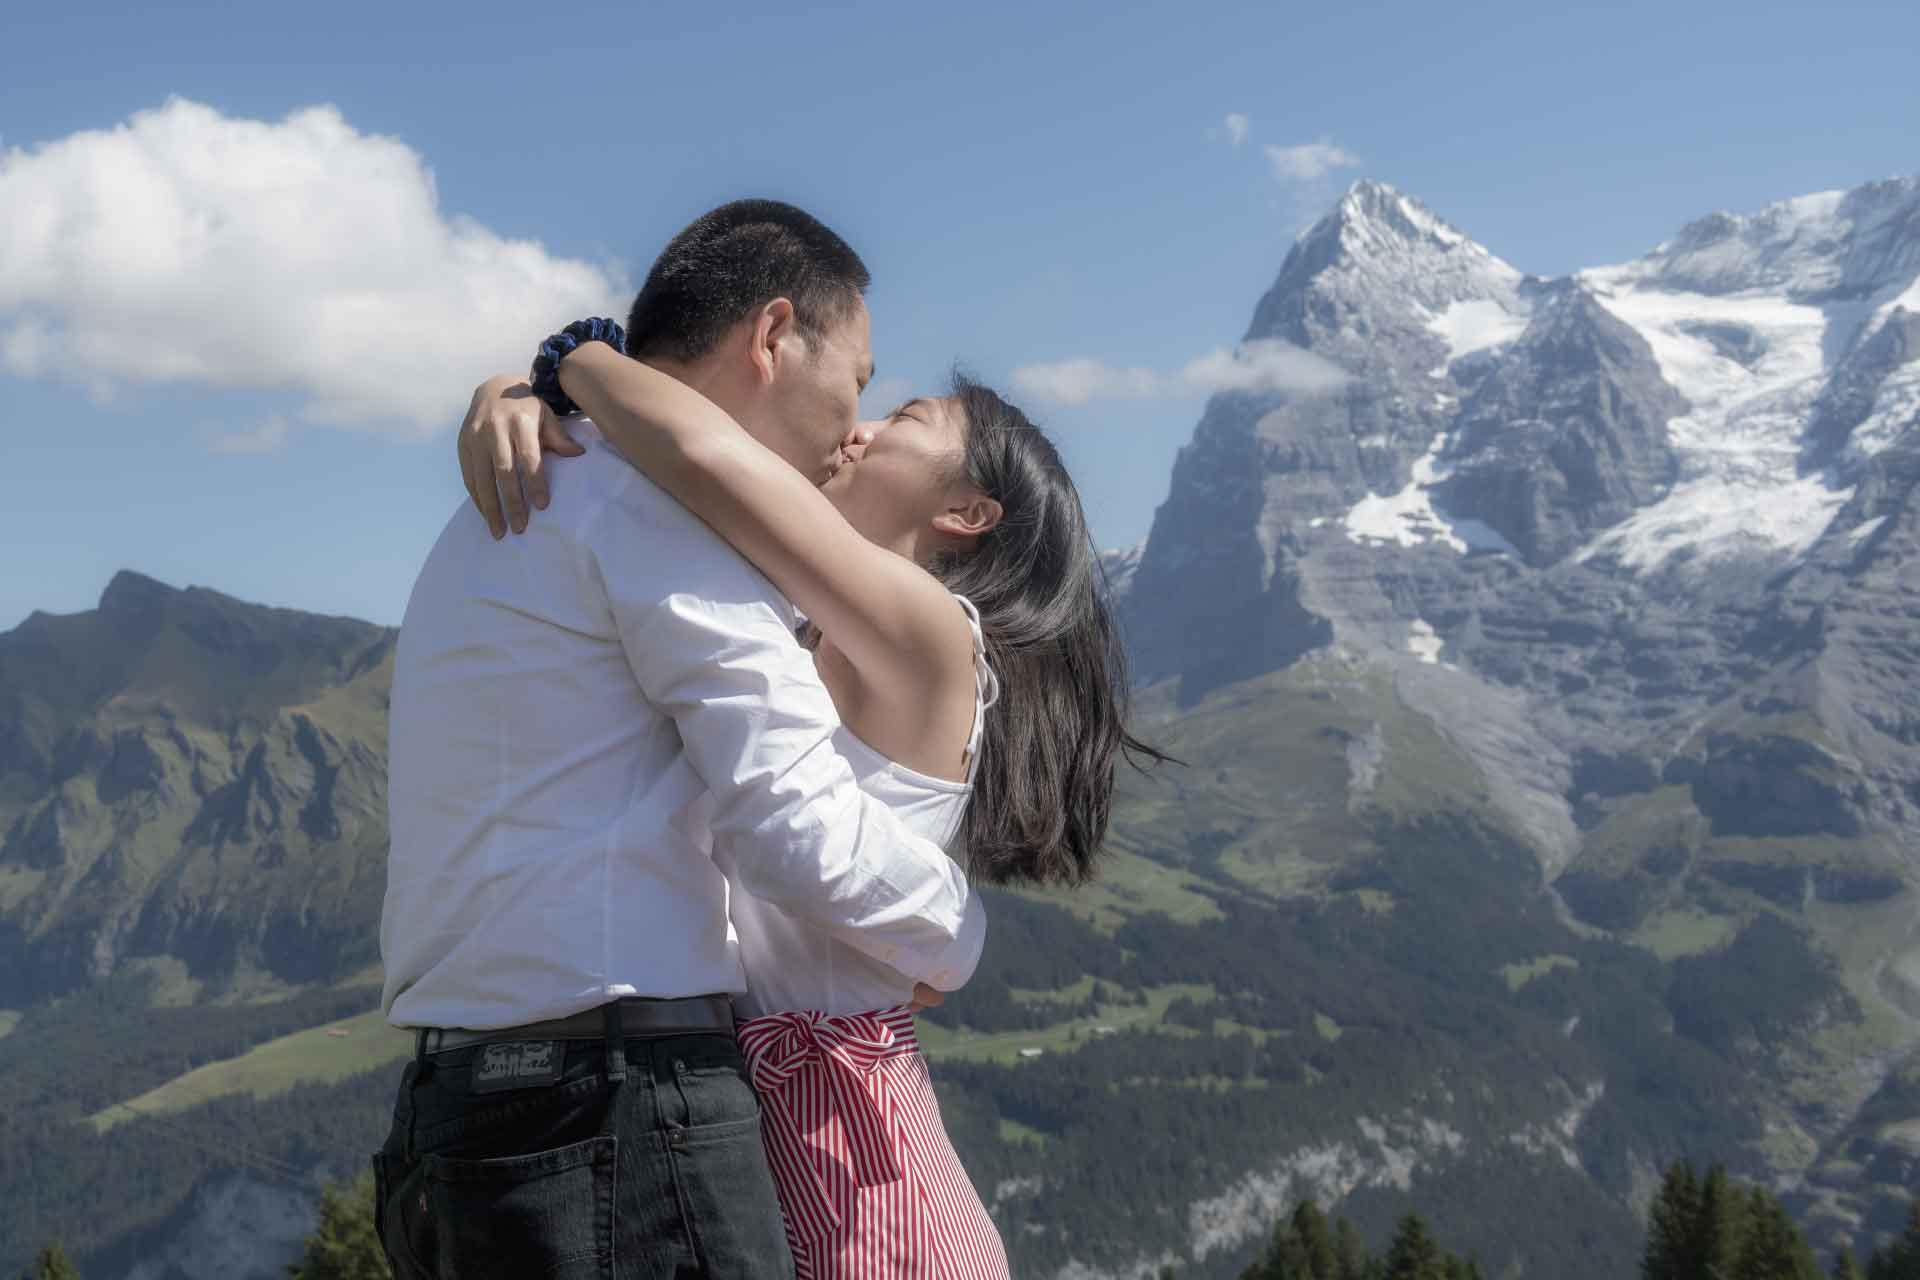 Surprise marriage proposal in Murren, Sweitzerland